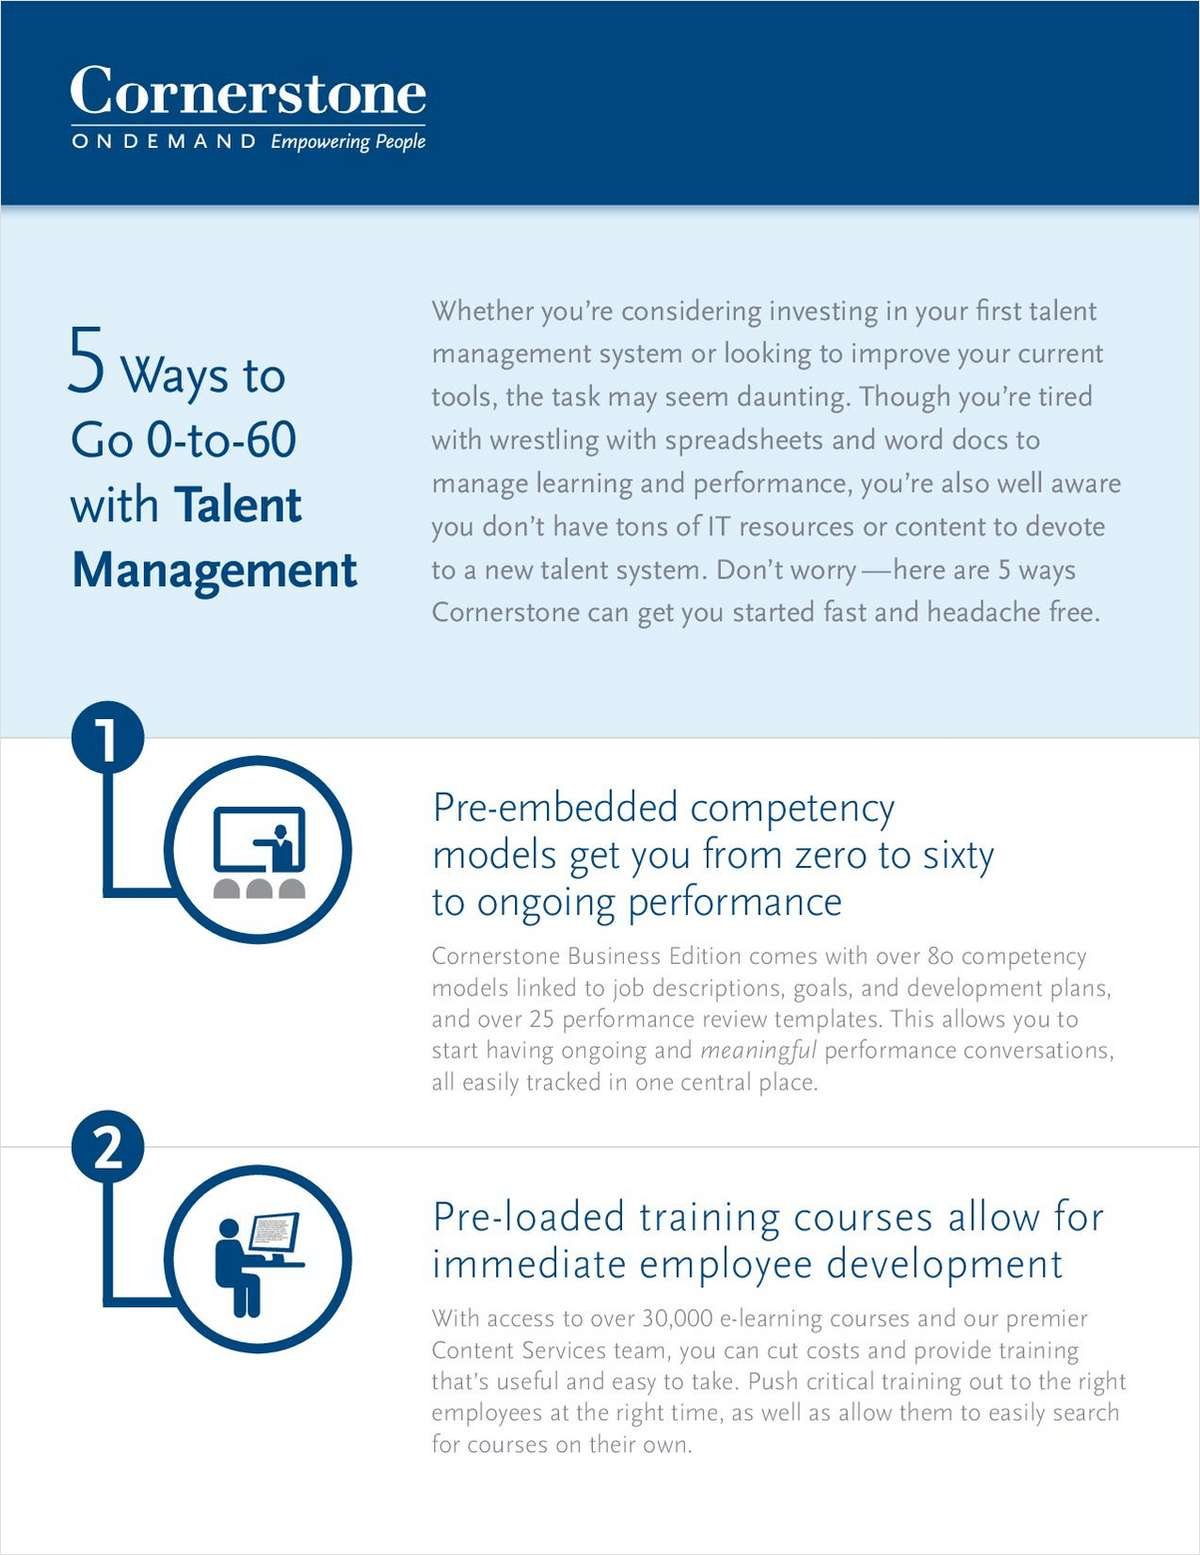 5 Ways to Go 0-to-60 with Talent Management